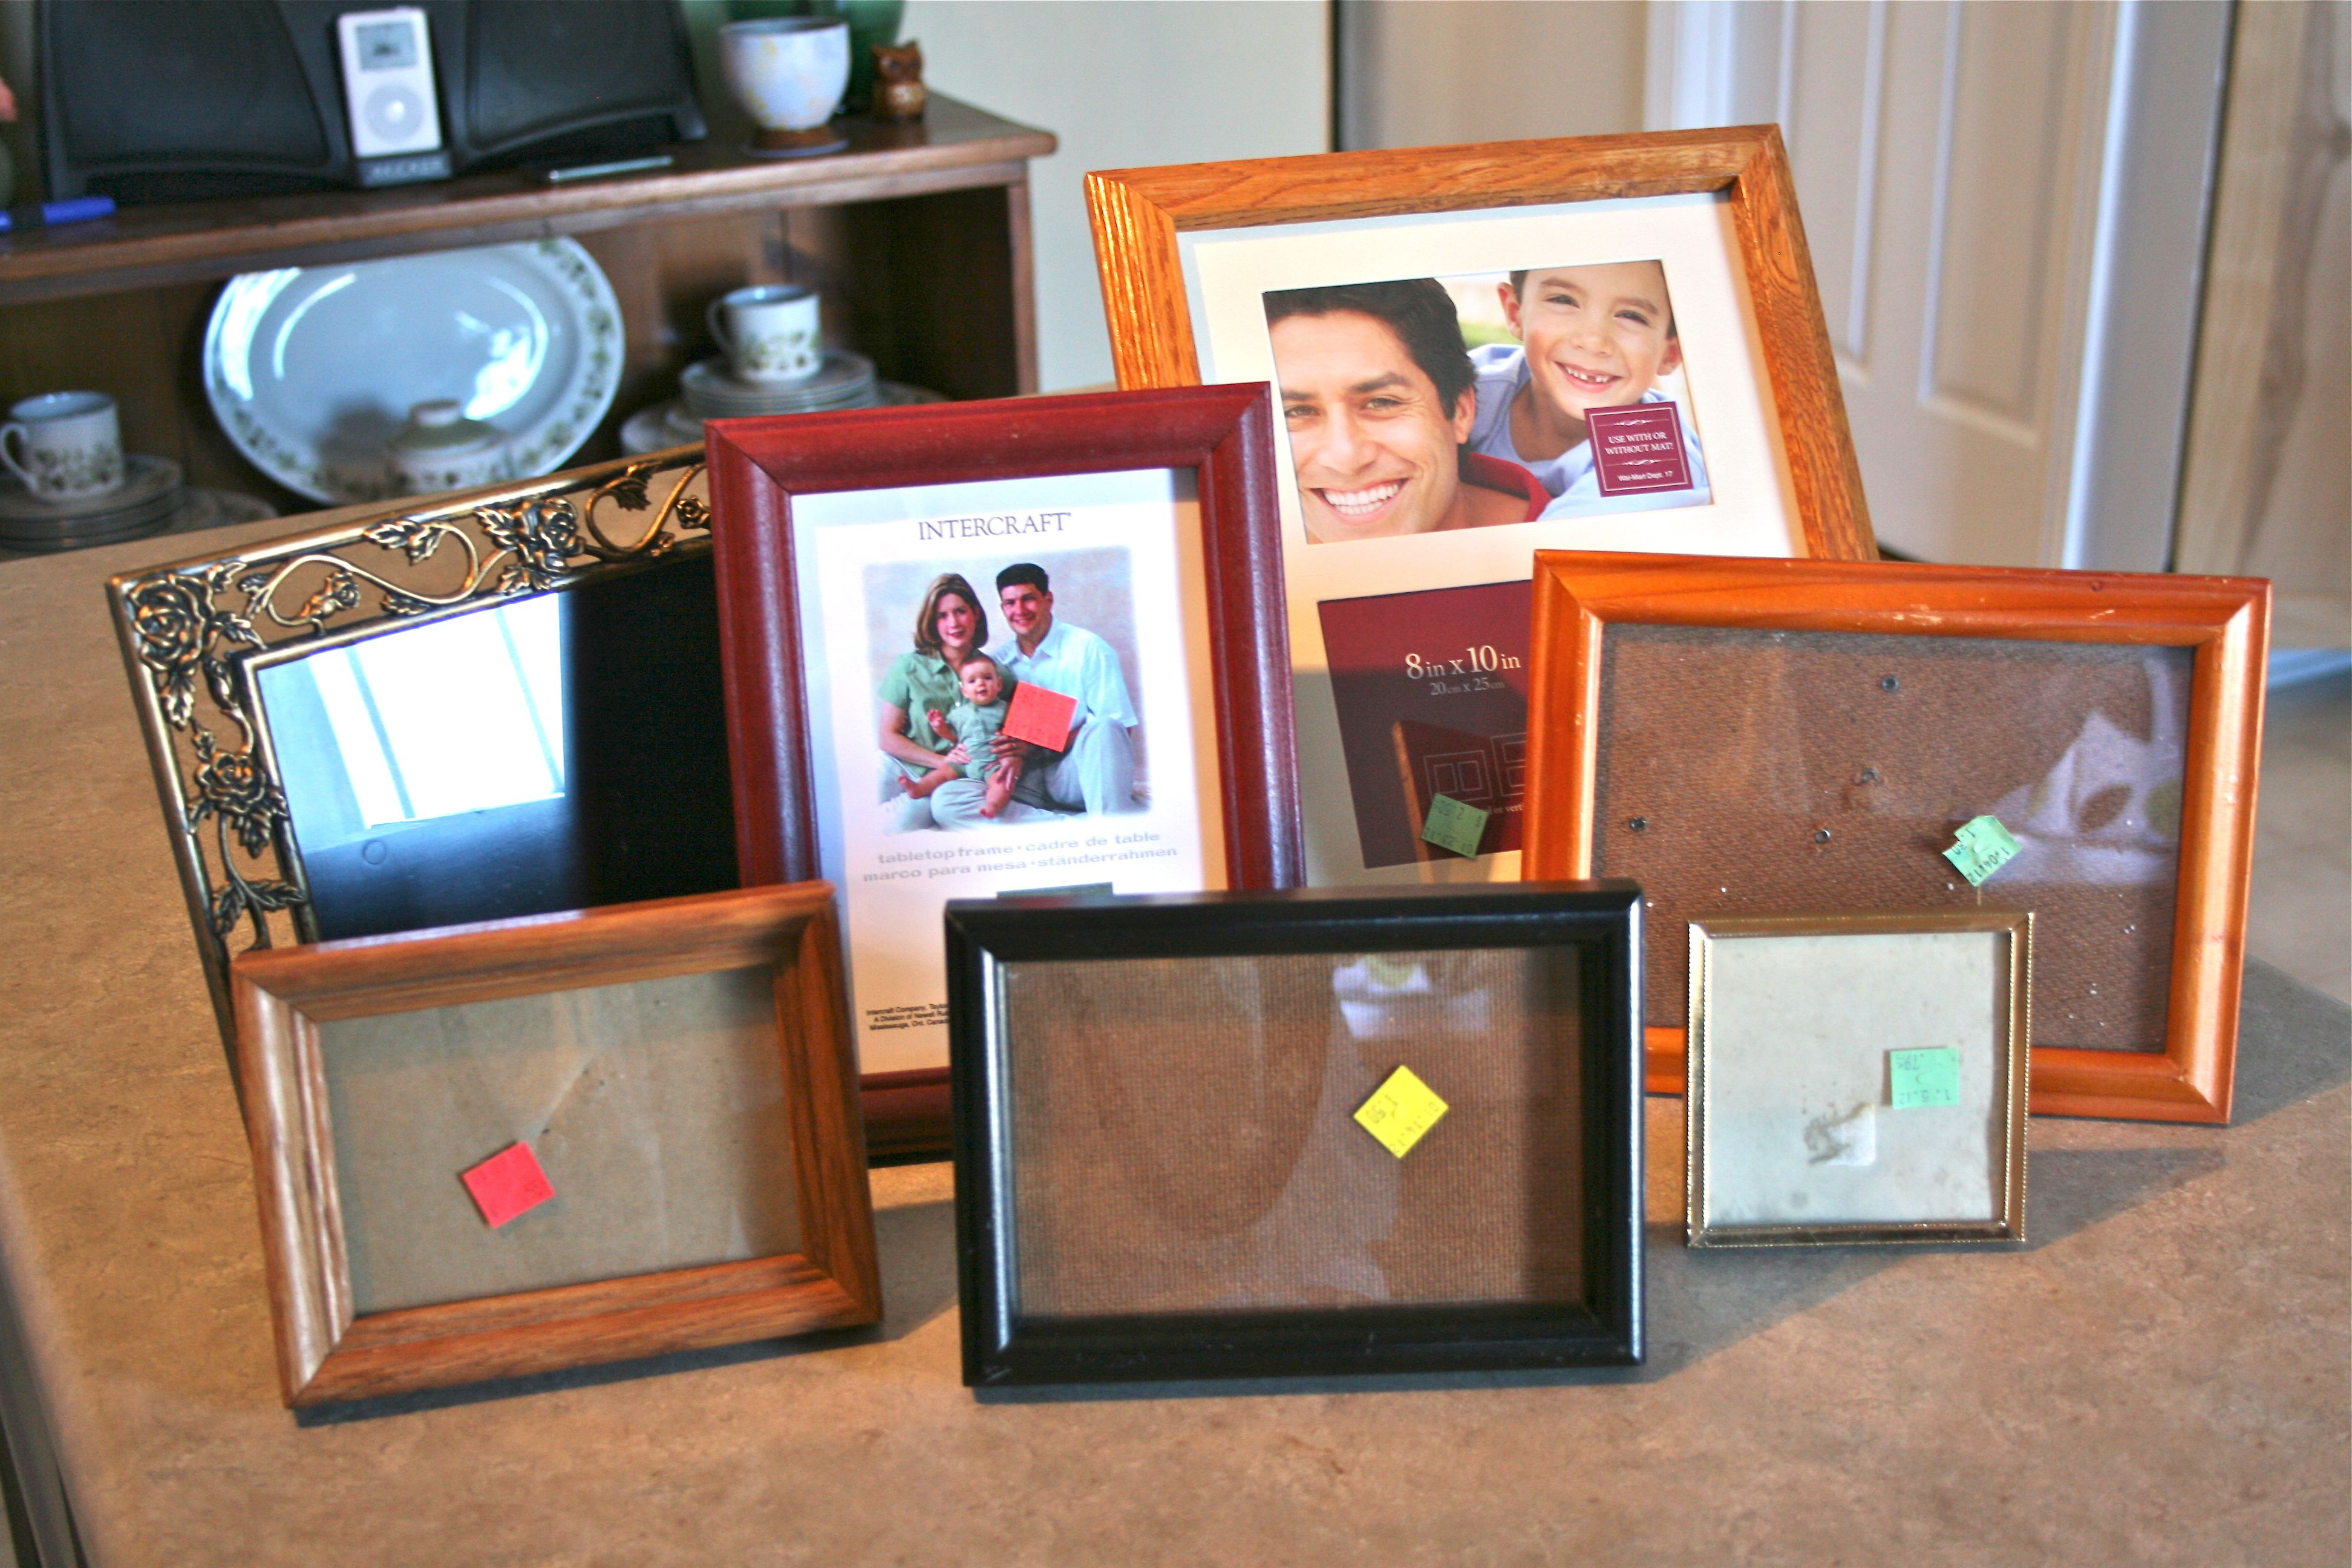 Fit for a wedding thrift store frames dream green diy i was hoping to find elaborate traditional frames with scroll work and filigree because all of those beautiful details really pop when painted a bright jeuxipadfo Choice Image